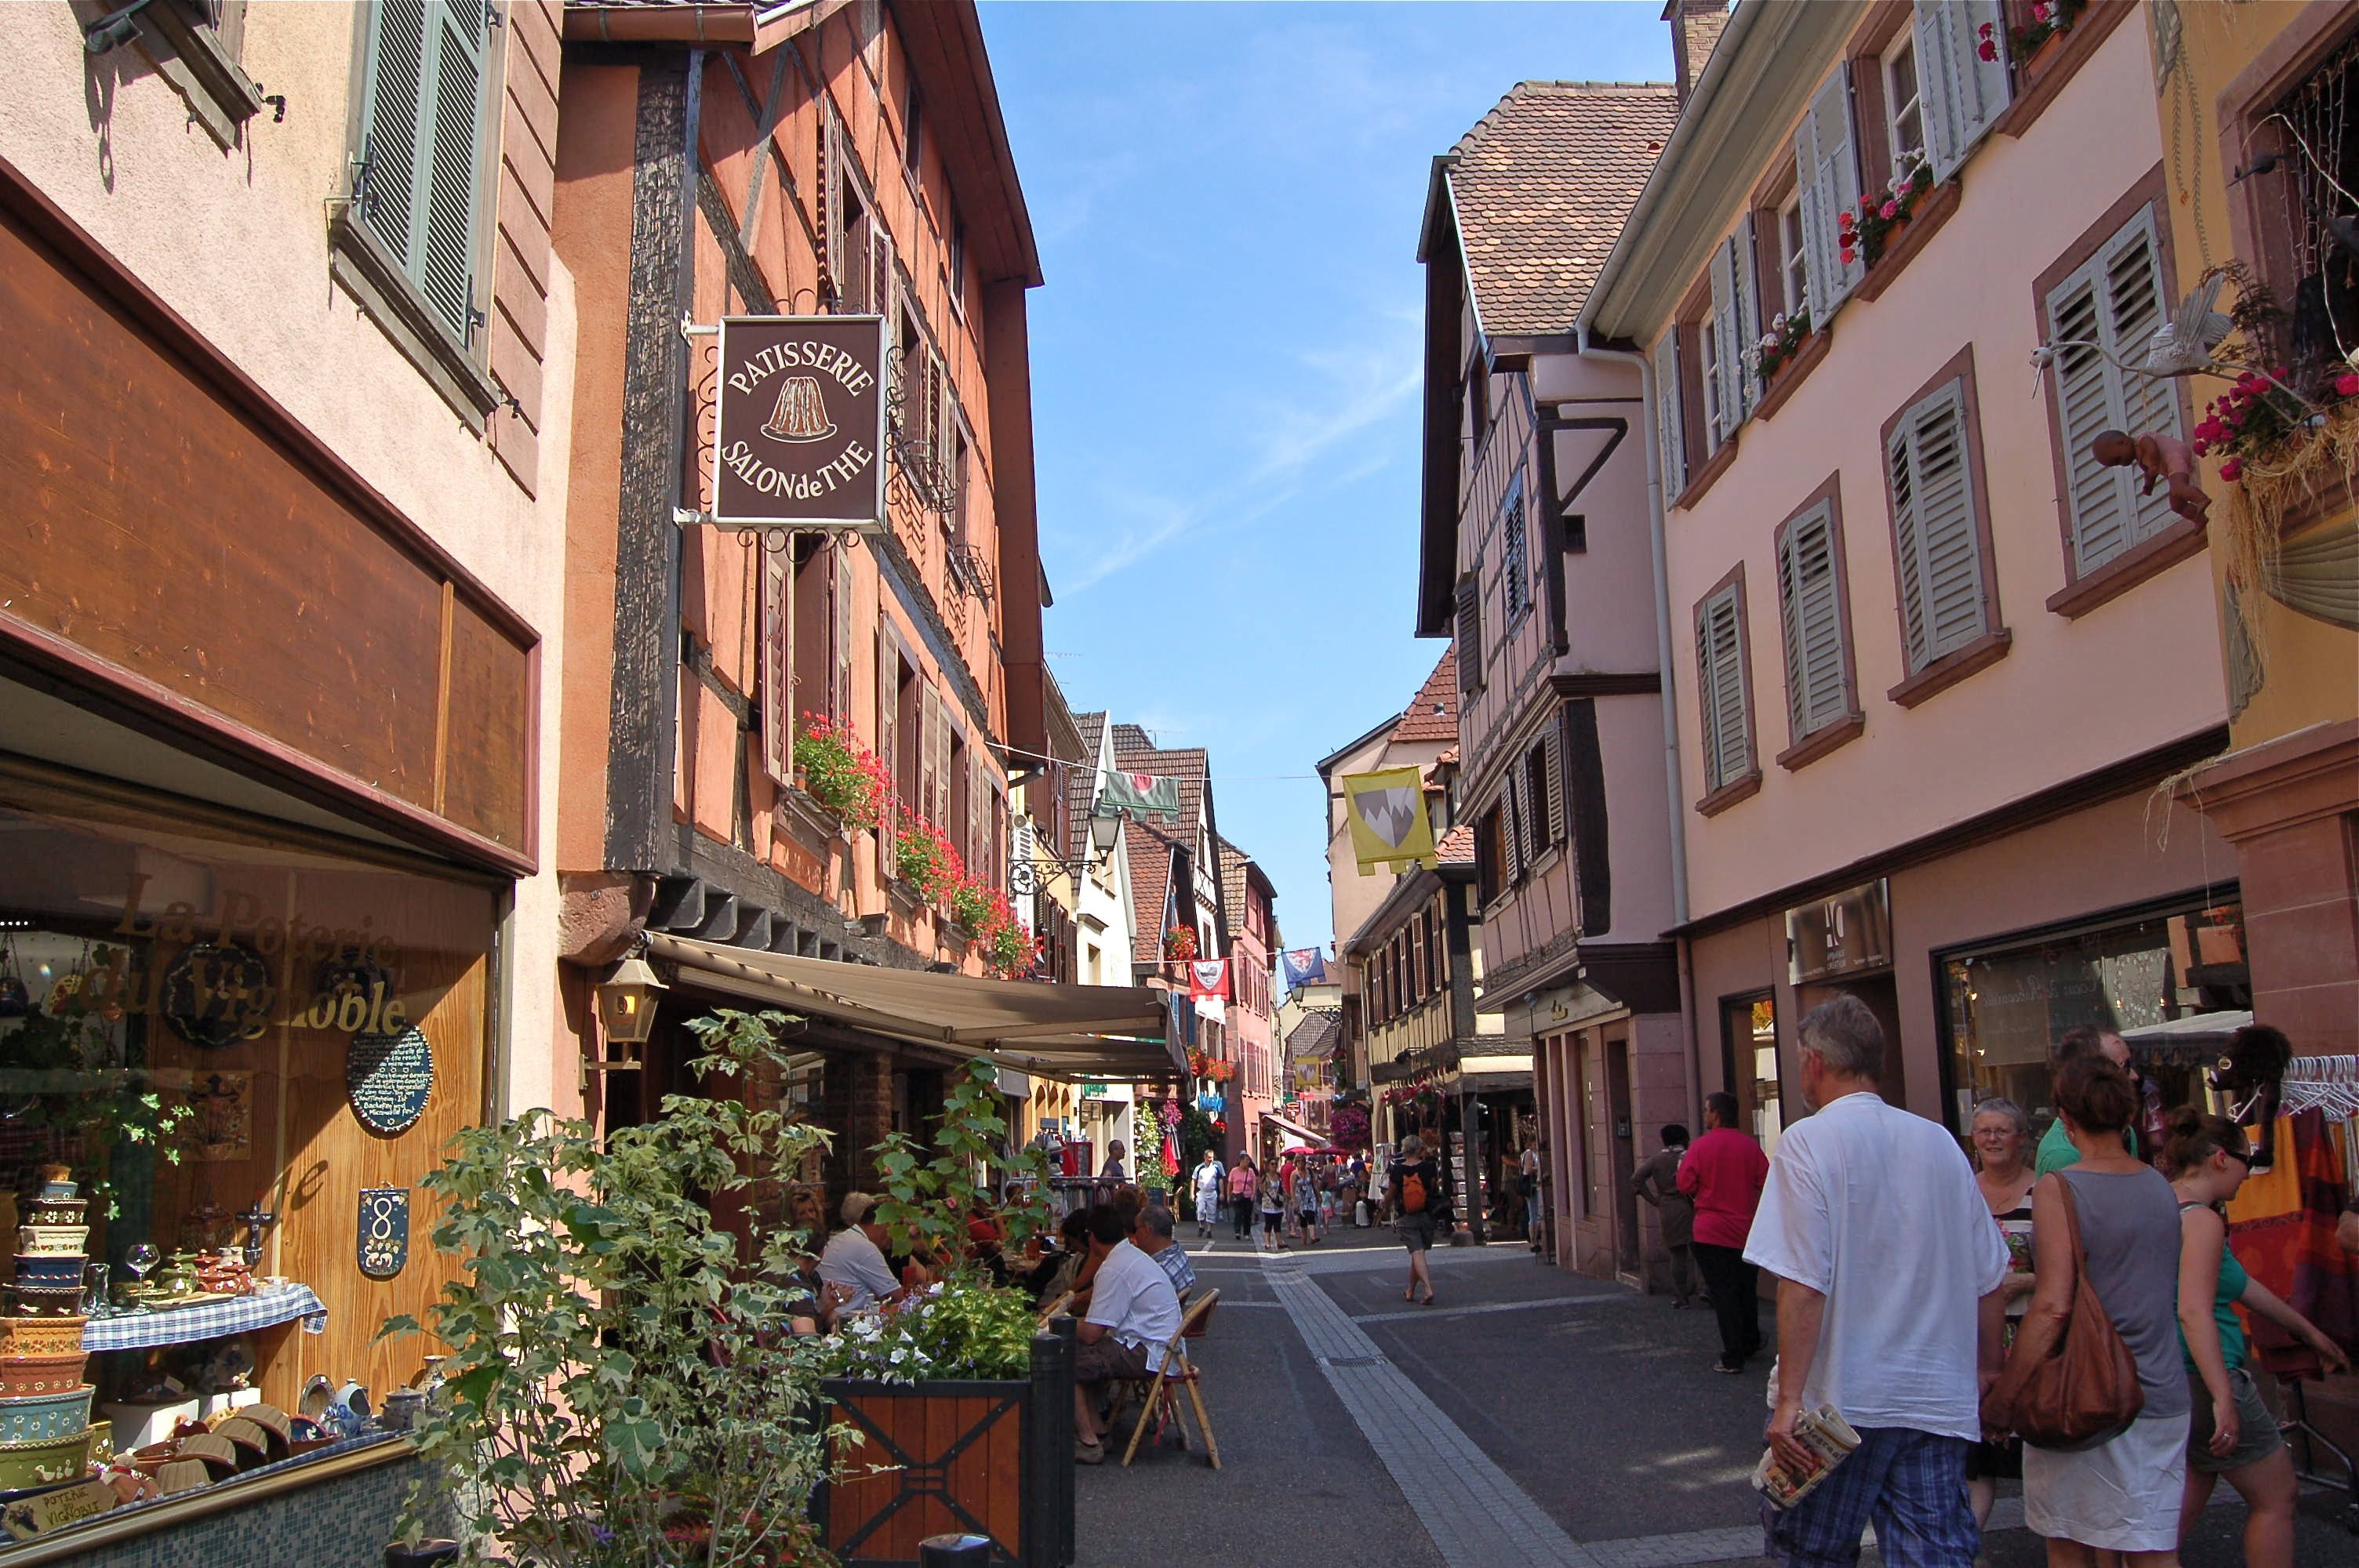 European Travel – The Village Of Riquewihr And Ribeauville